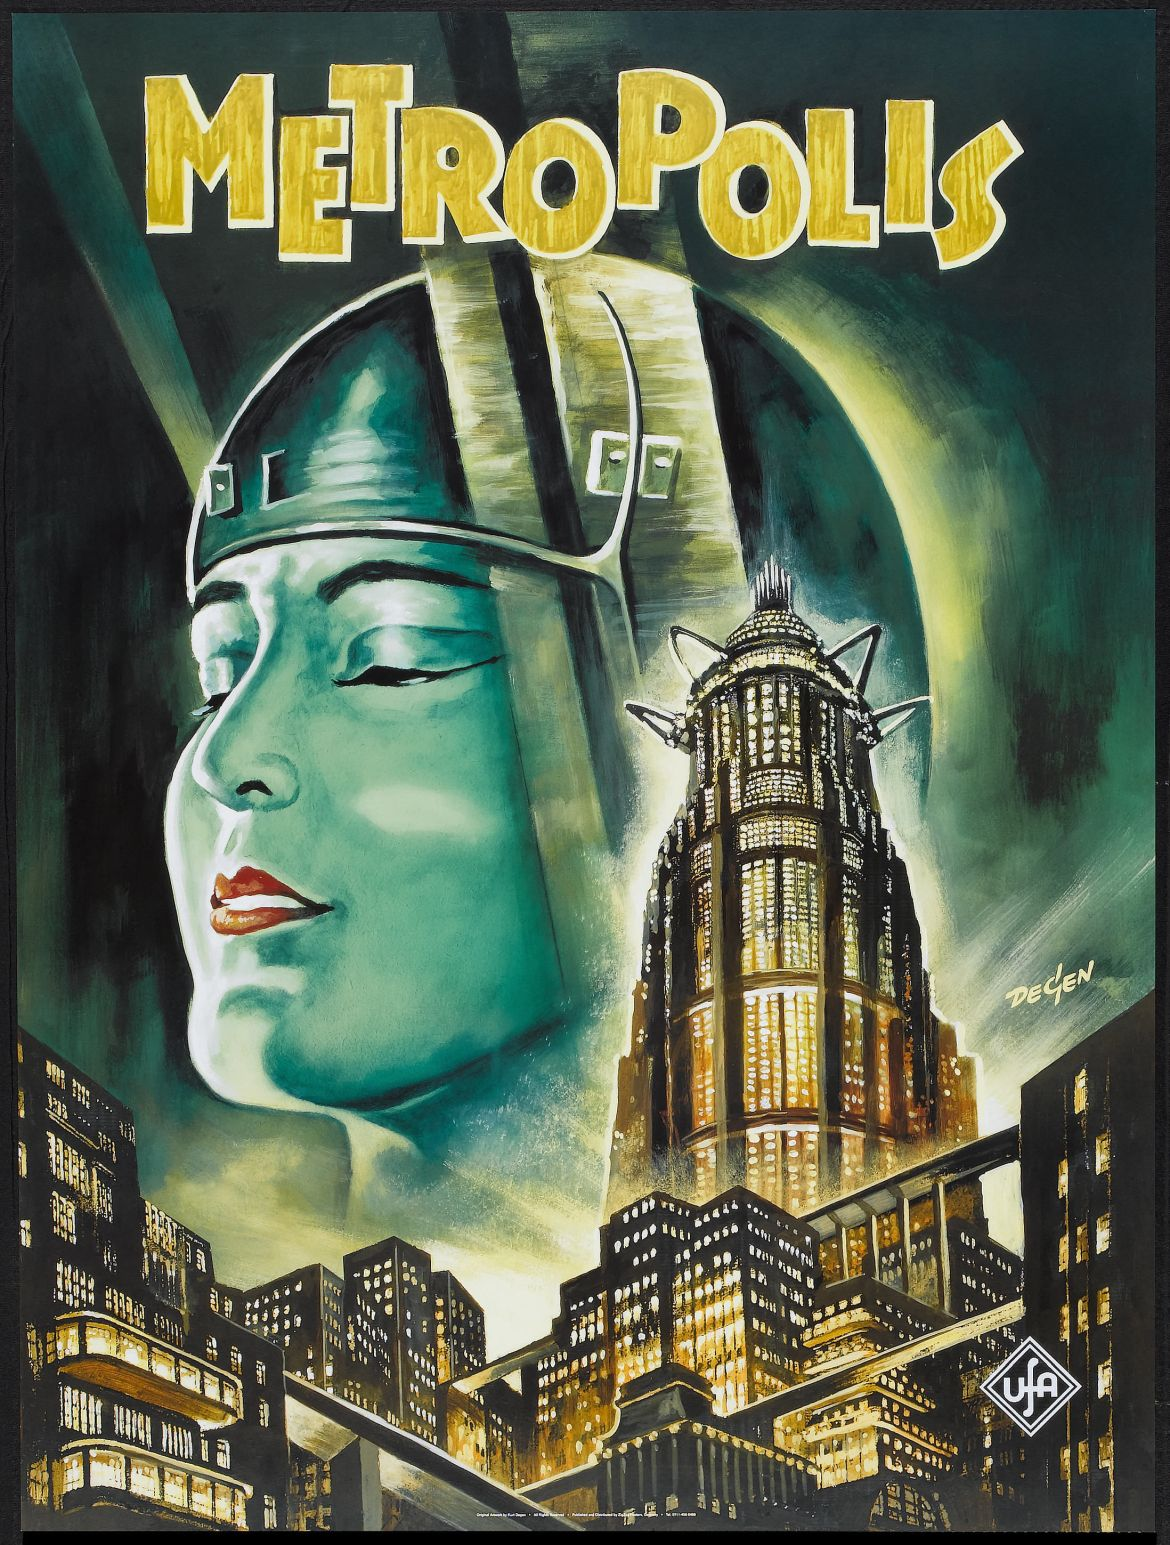 Metropolis with the Orchestra of Opera North – Howard Assembly Room, Leeds, 2nd April 2015